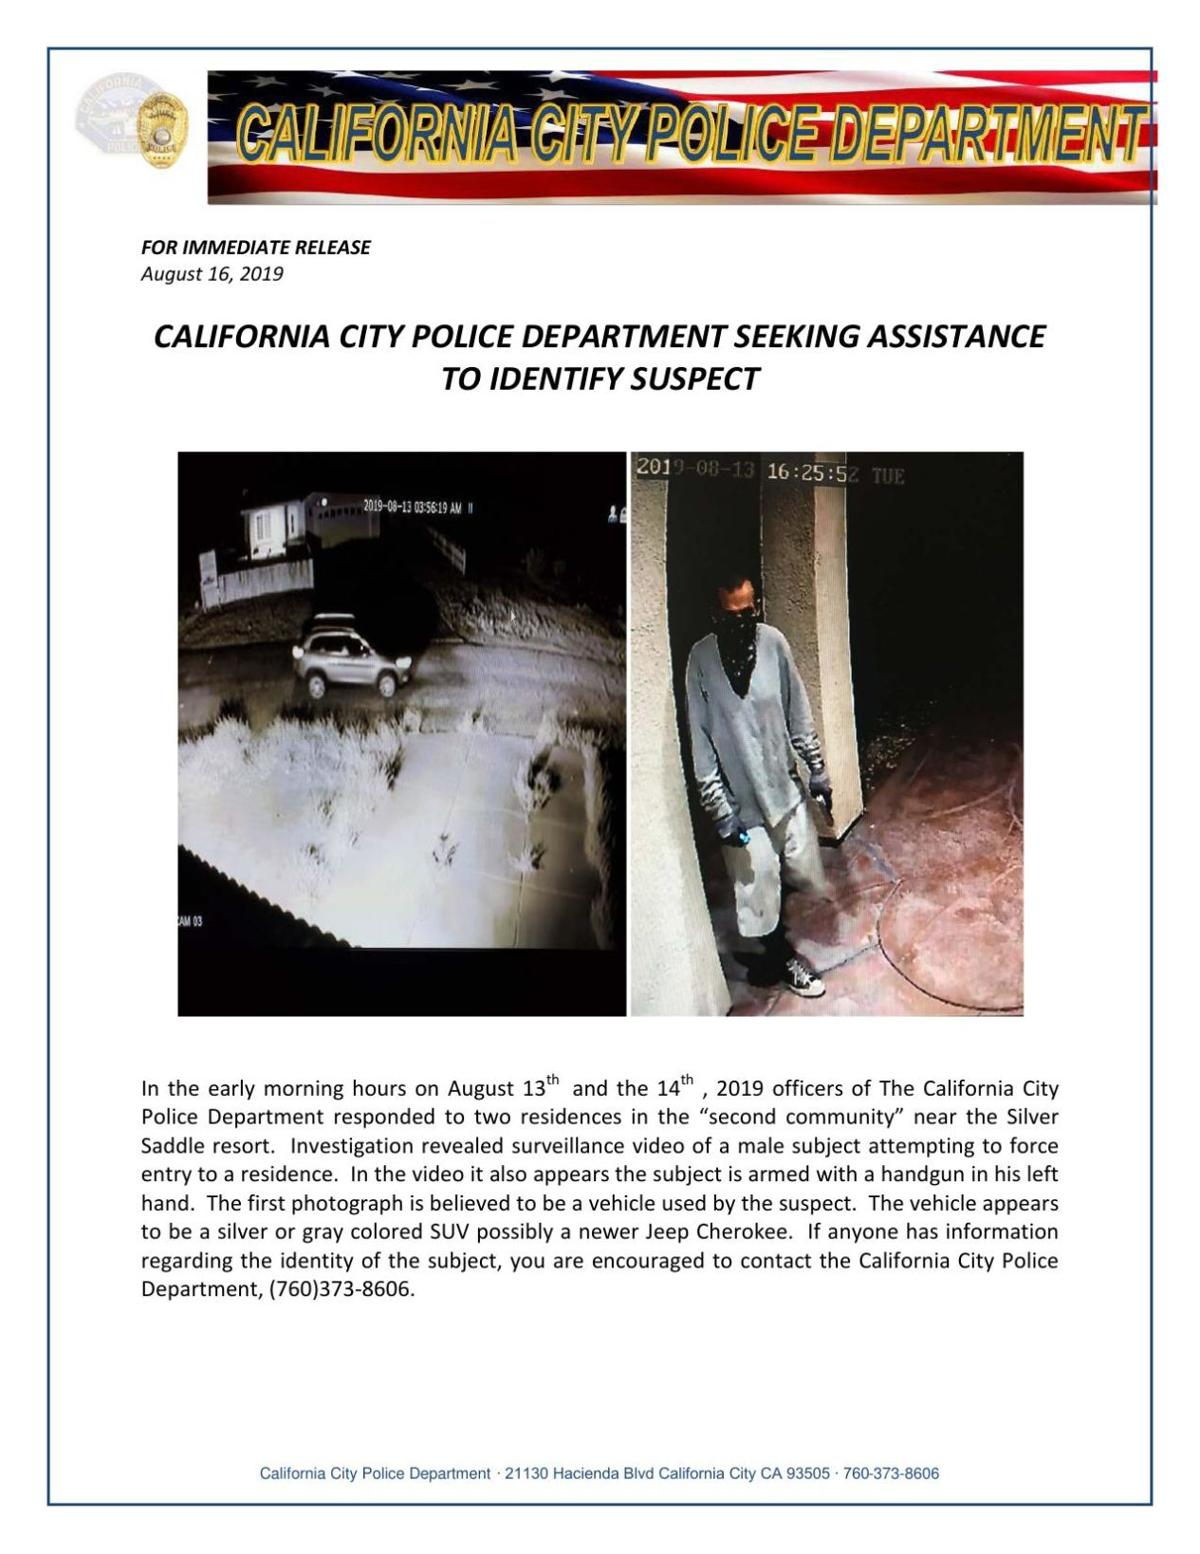 Advisory: Police asking for public assistance in identifying gunman